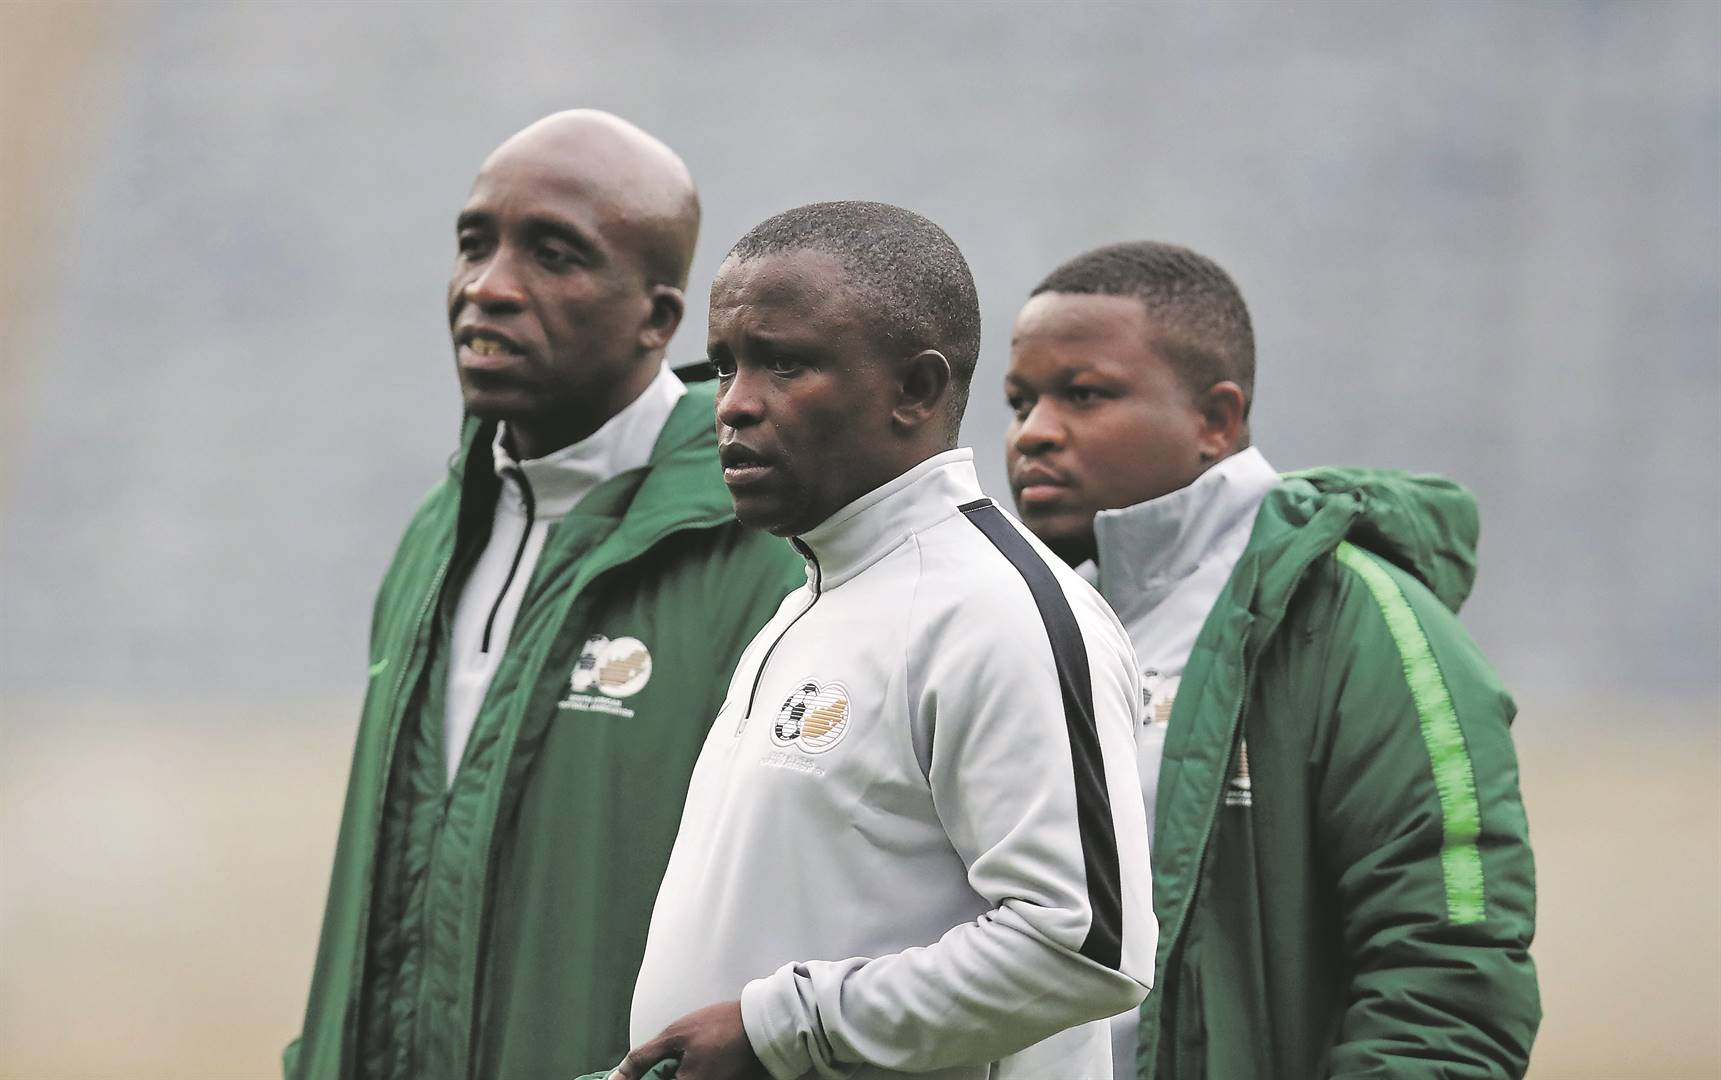 Kwanele Kopo (right) is one of the unsung heroes of the SA Under-23 head coach David Notoane's Olympics backroom staff. Picture: Muzi Ntombela / BackpagePix